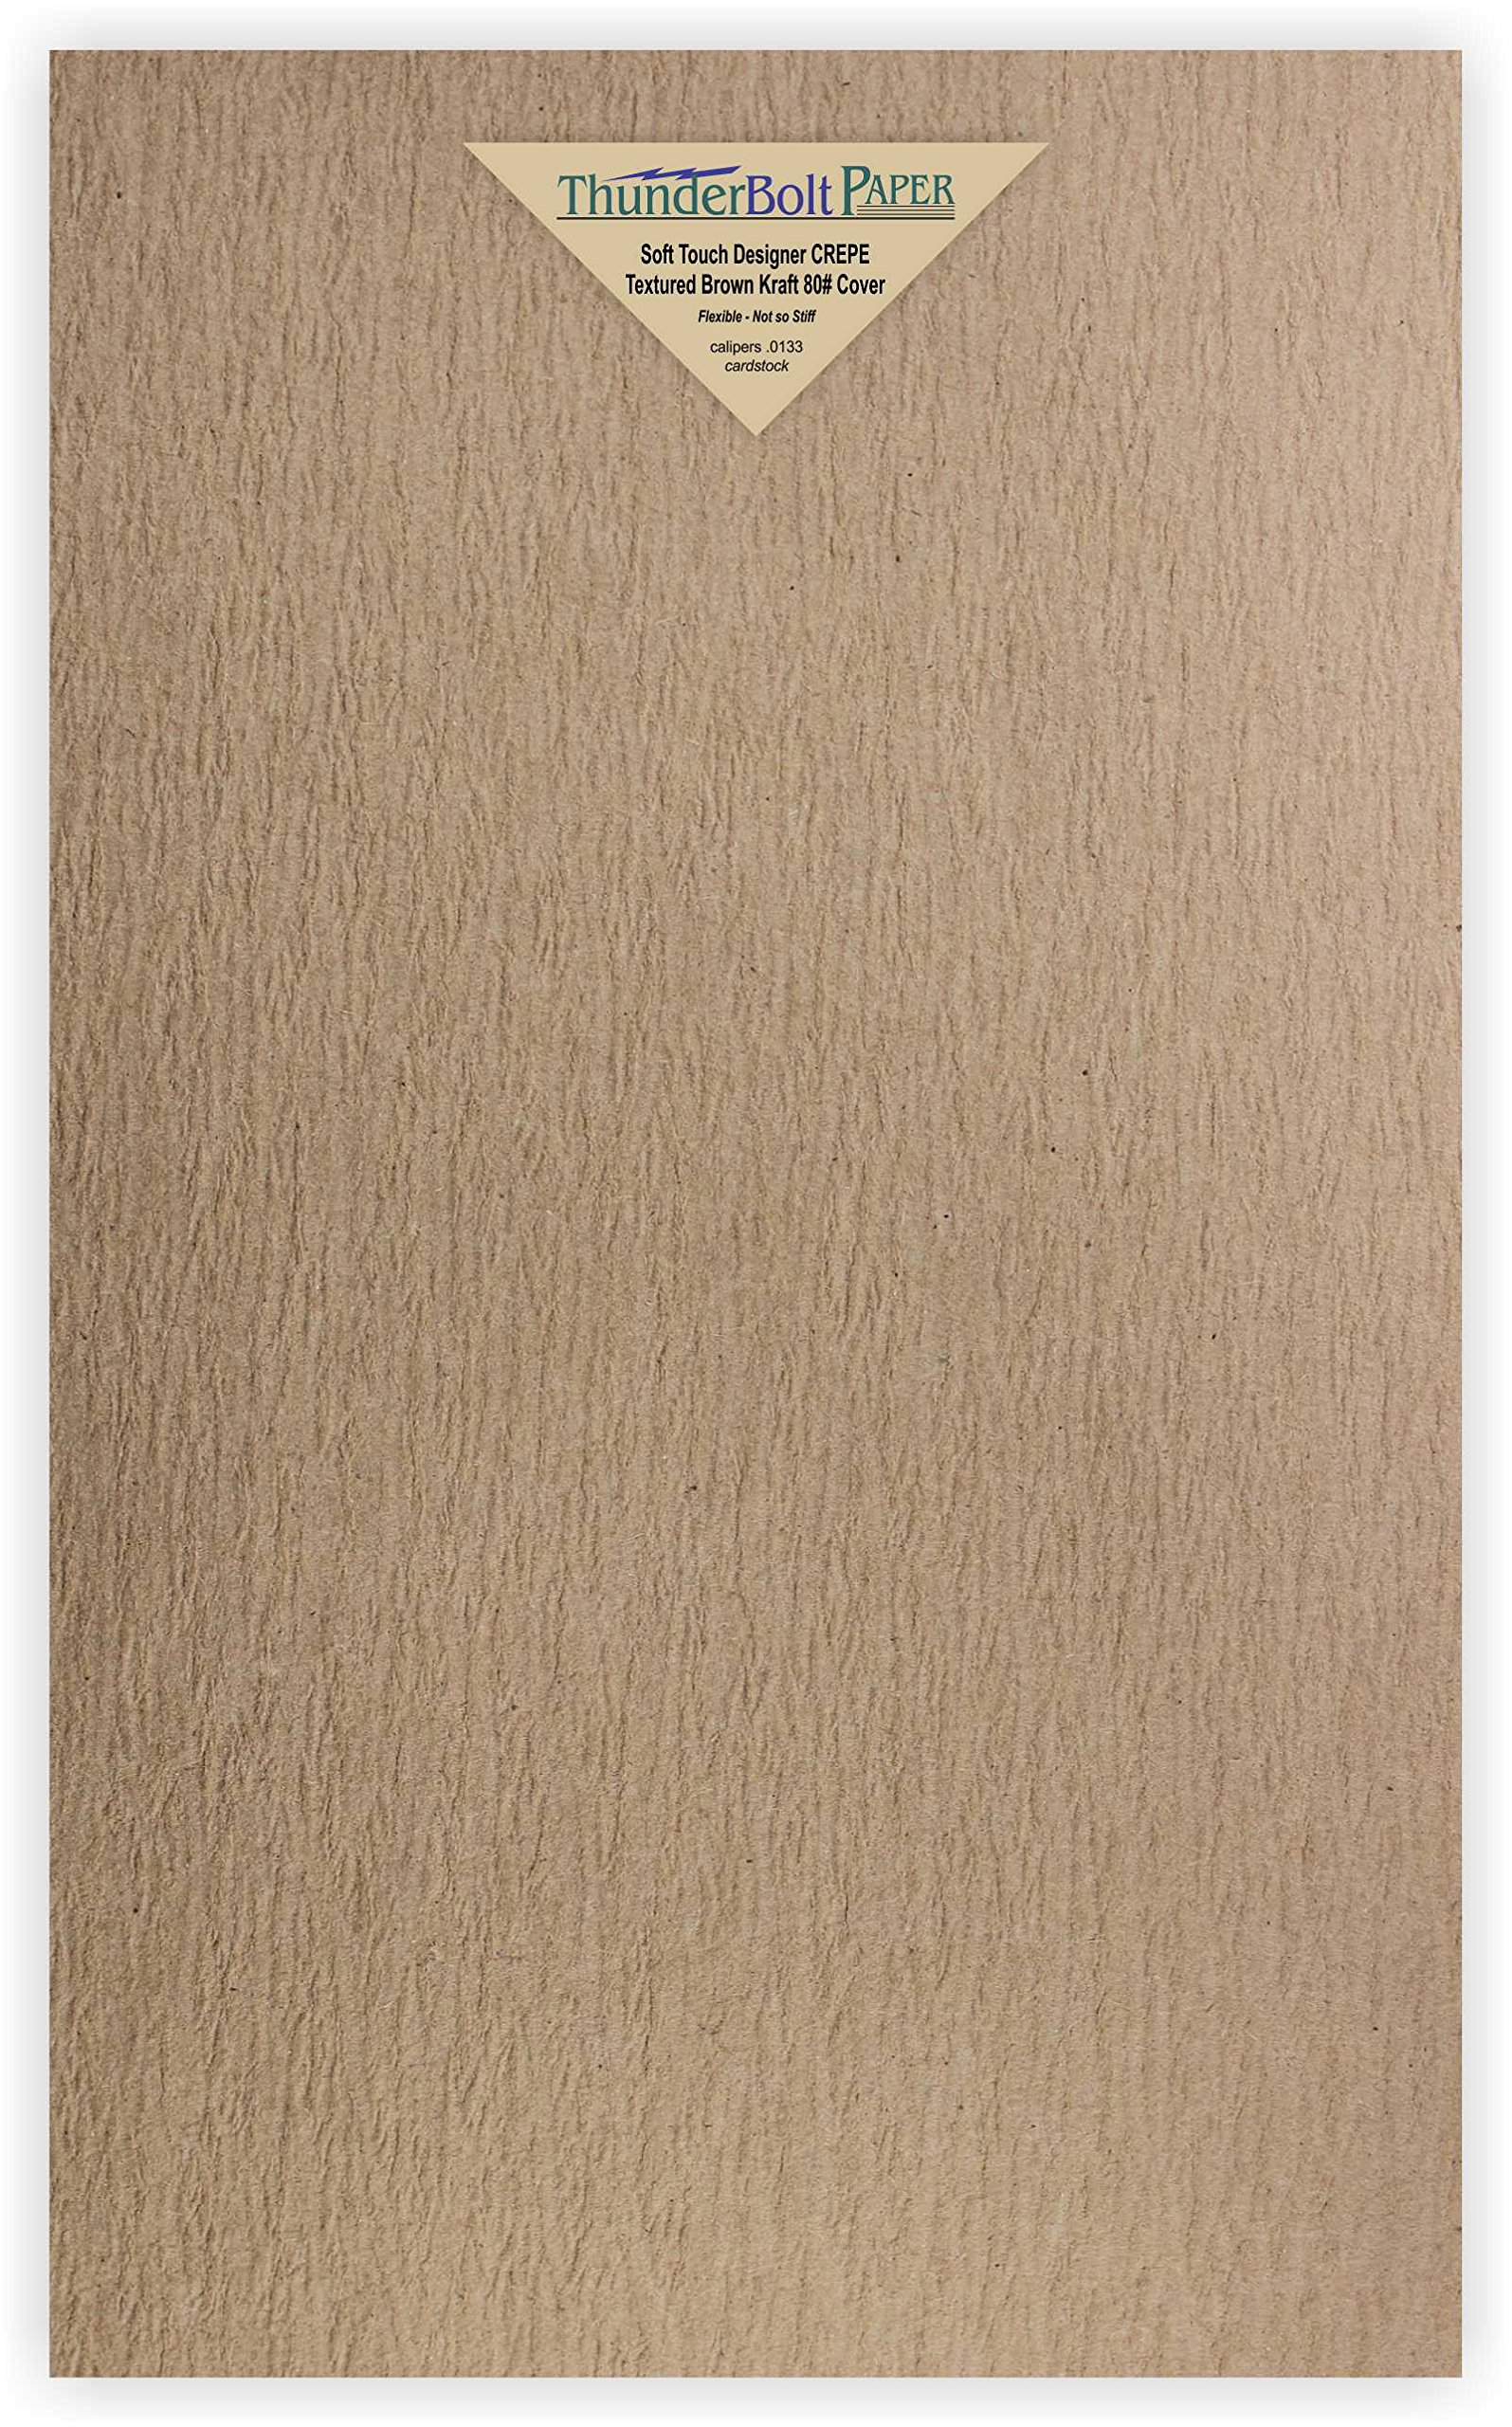 100 New Soft Touch Designer Crepe Brown Kraft Cover Paper 8.5 X 14 Inches, 80lb Thick Card Sheets - Texture Runs Long - Legal & Menu Size -Textured Premium Quality, Flexible - Plain Blank Cardstock